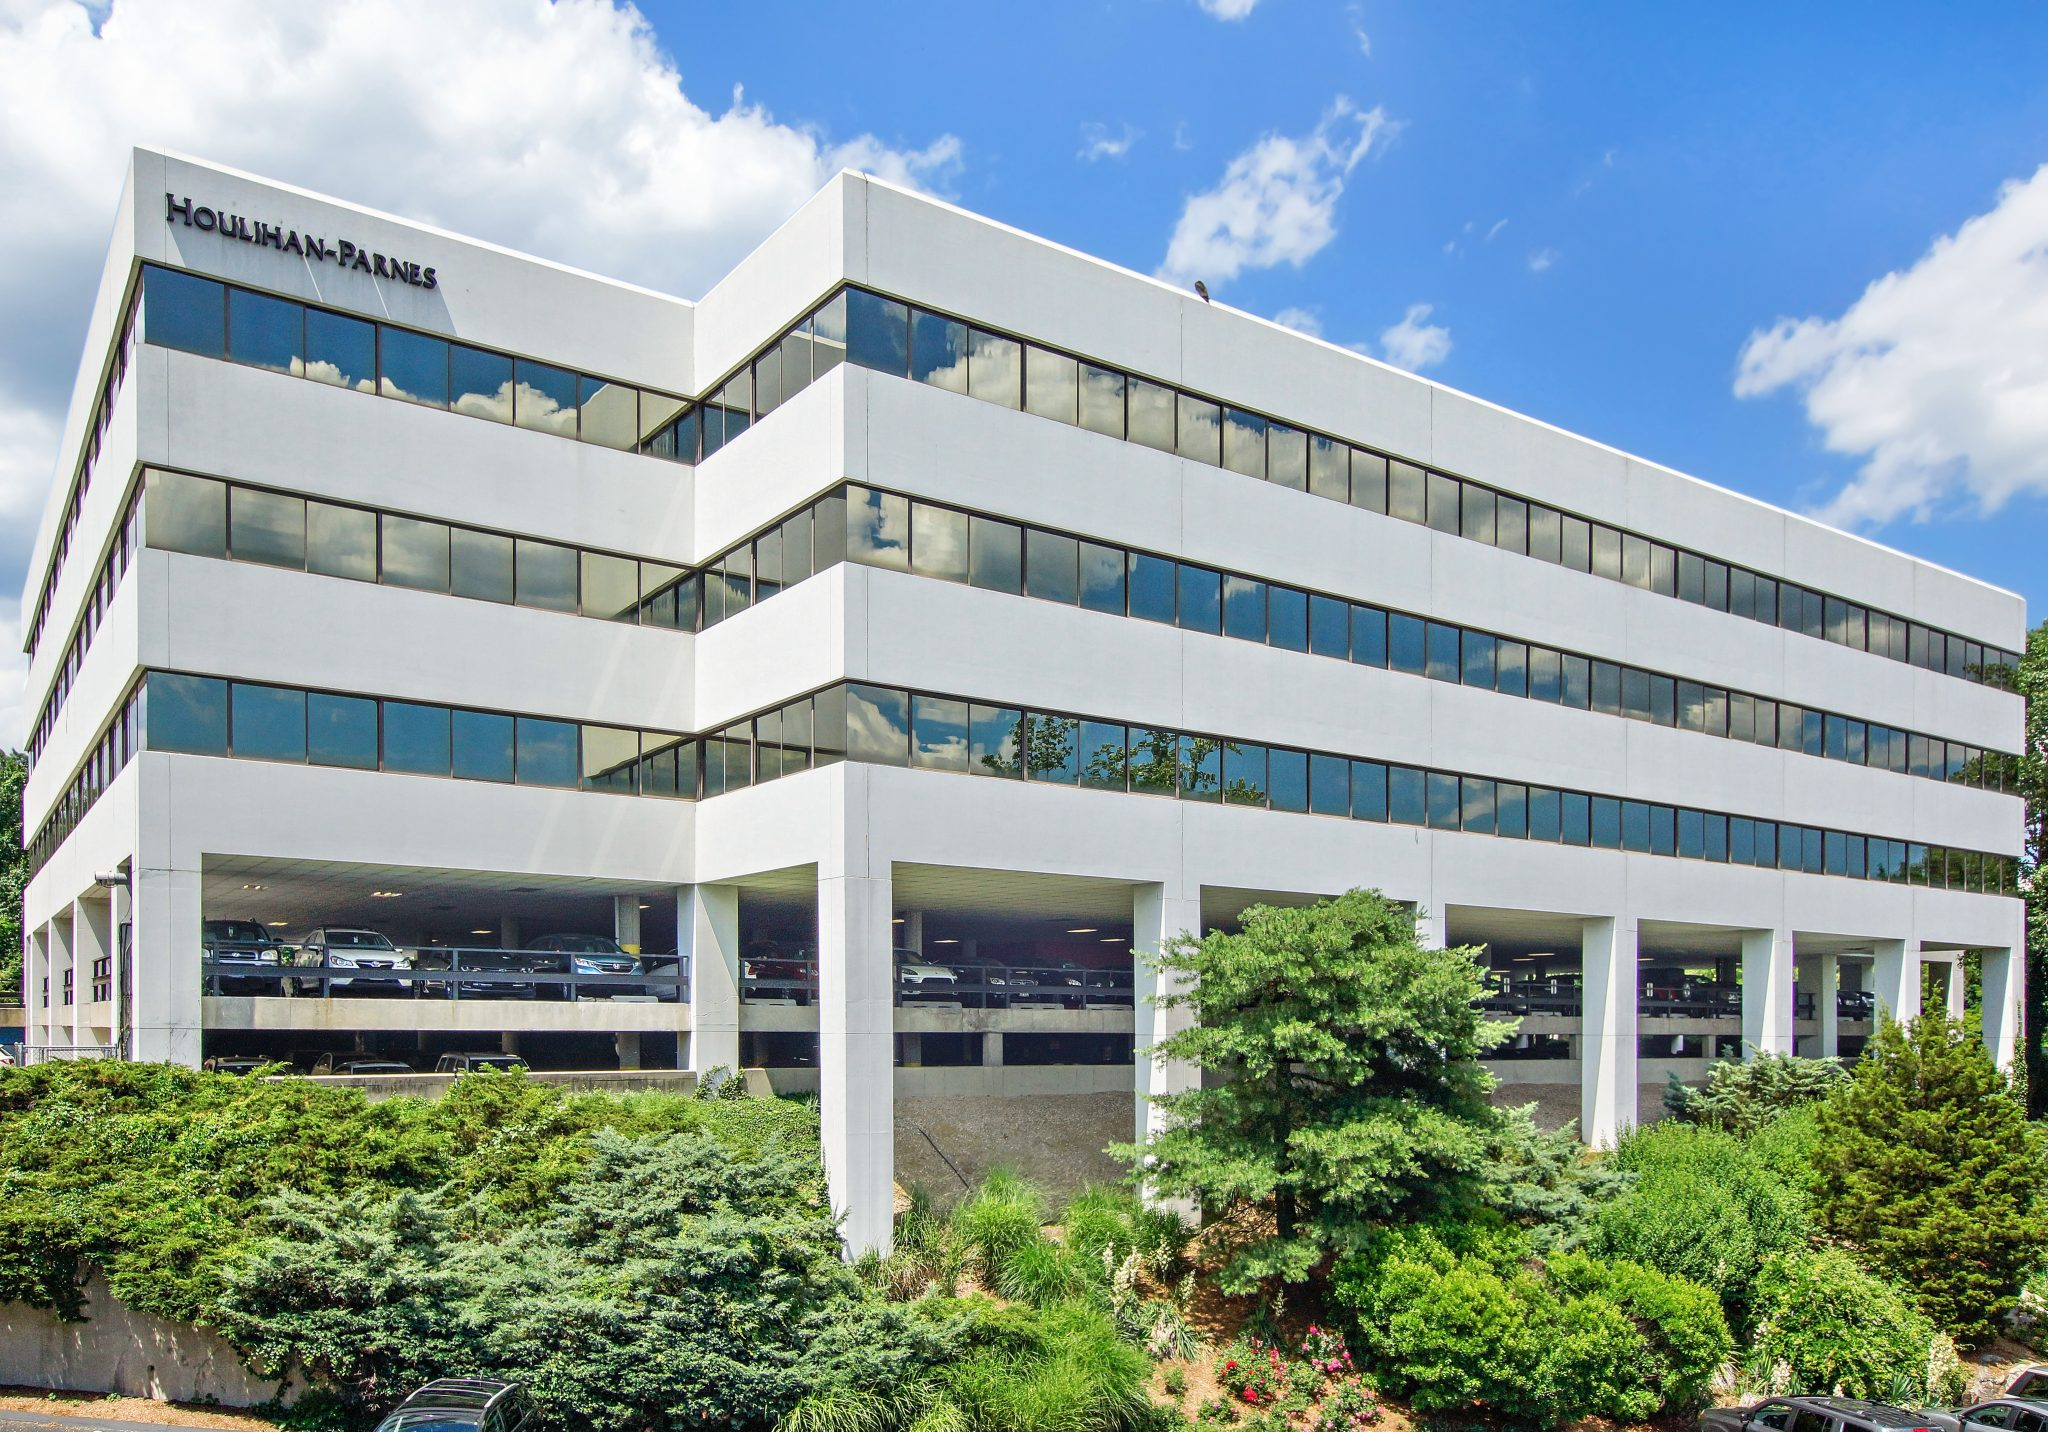 4 West Red Oak Lane – White Plains, NY 10604 – 4,921 sq. ft.